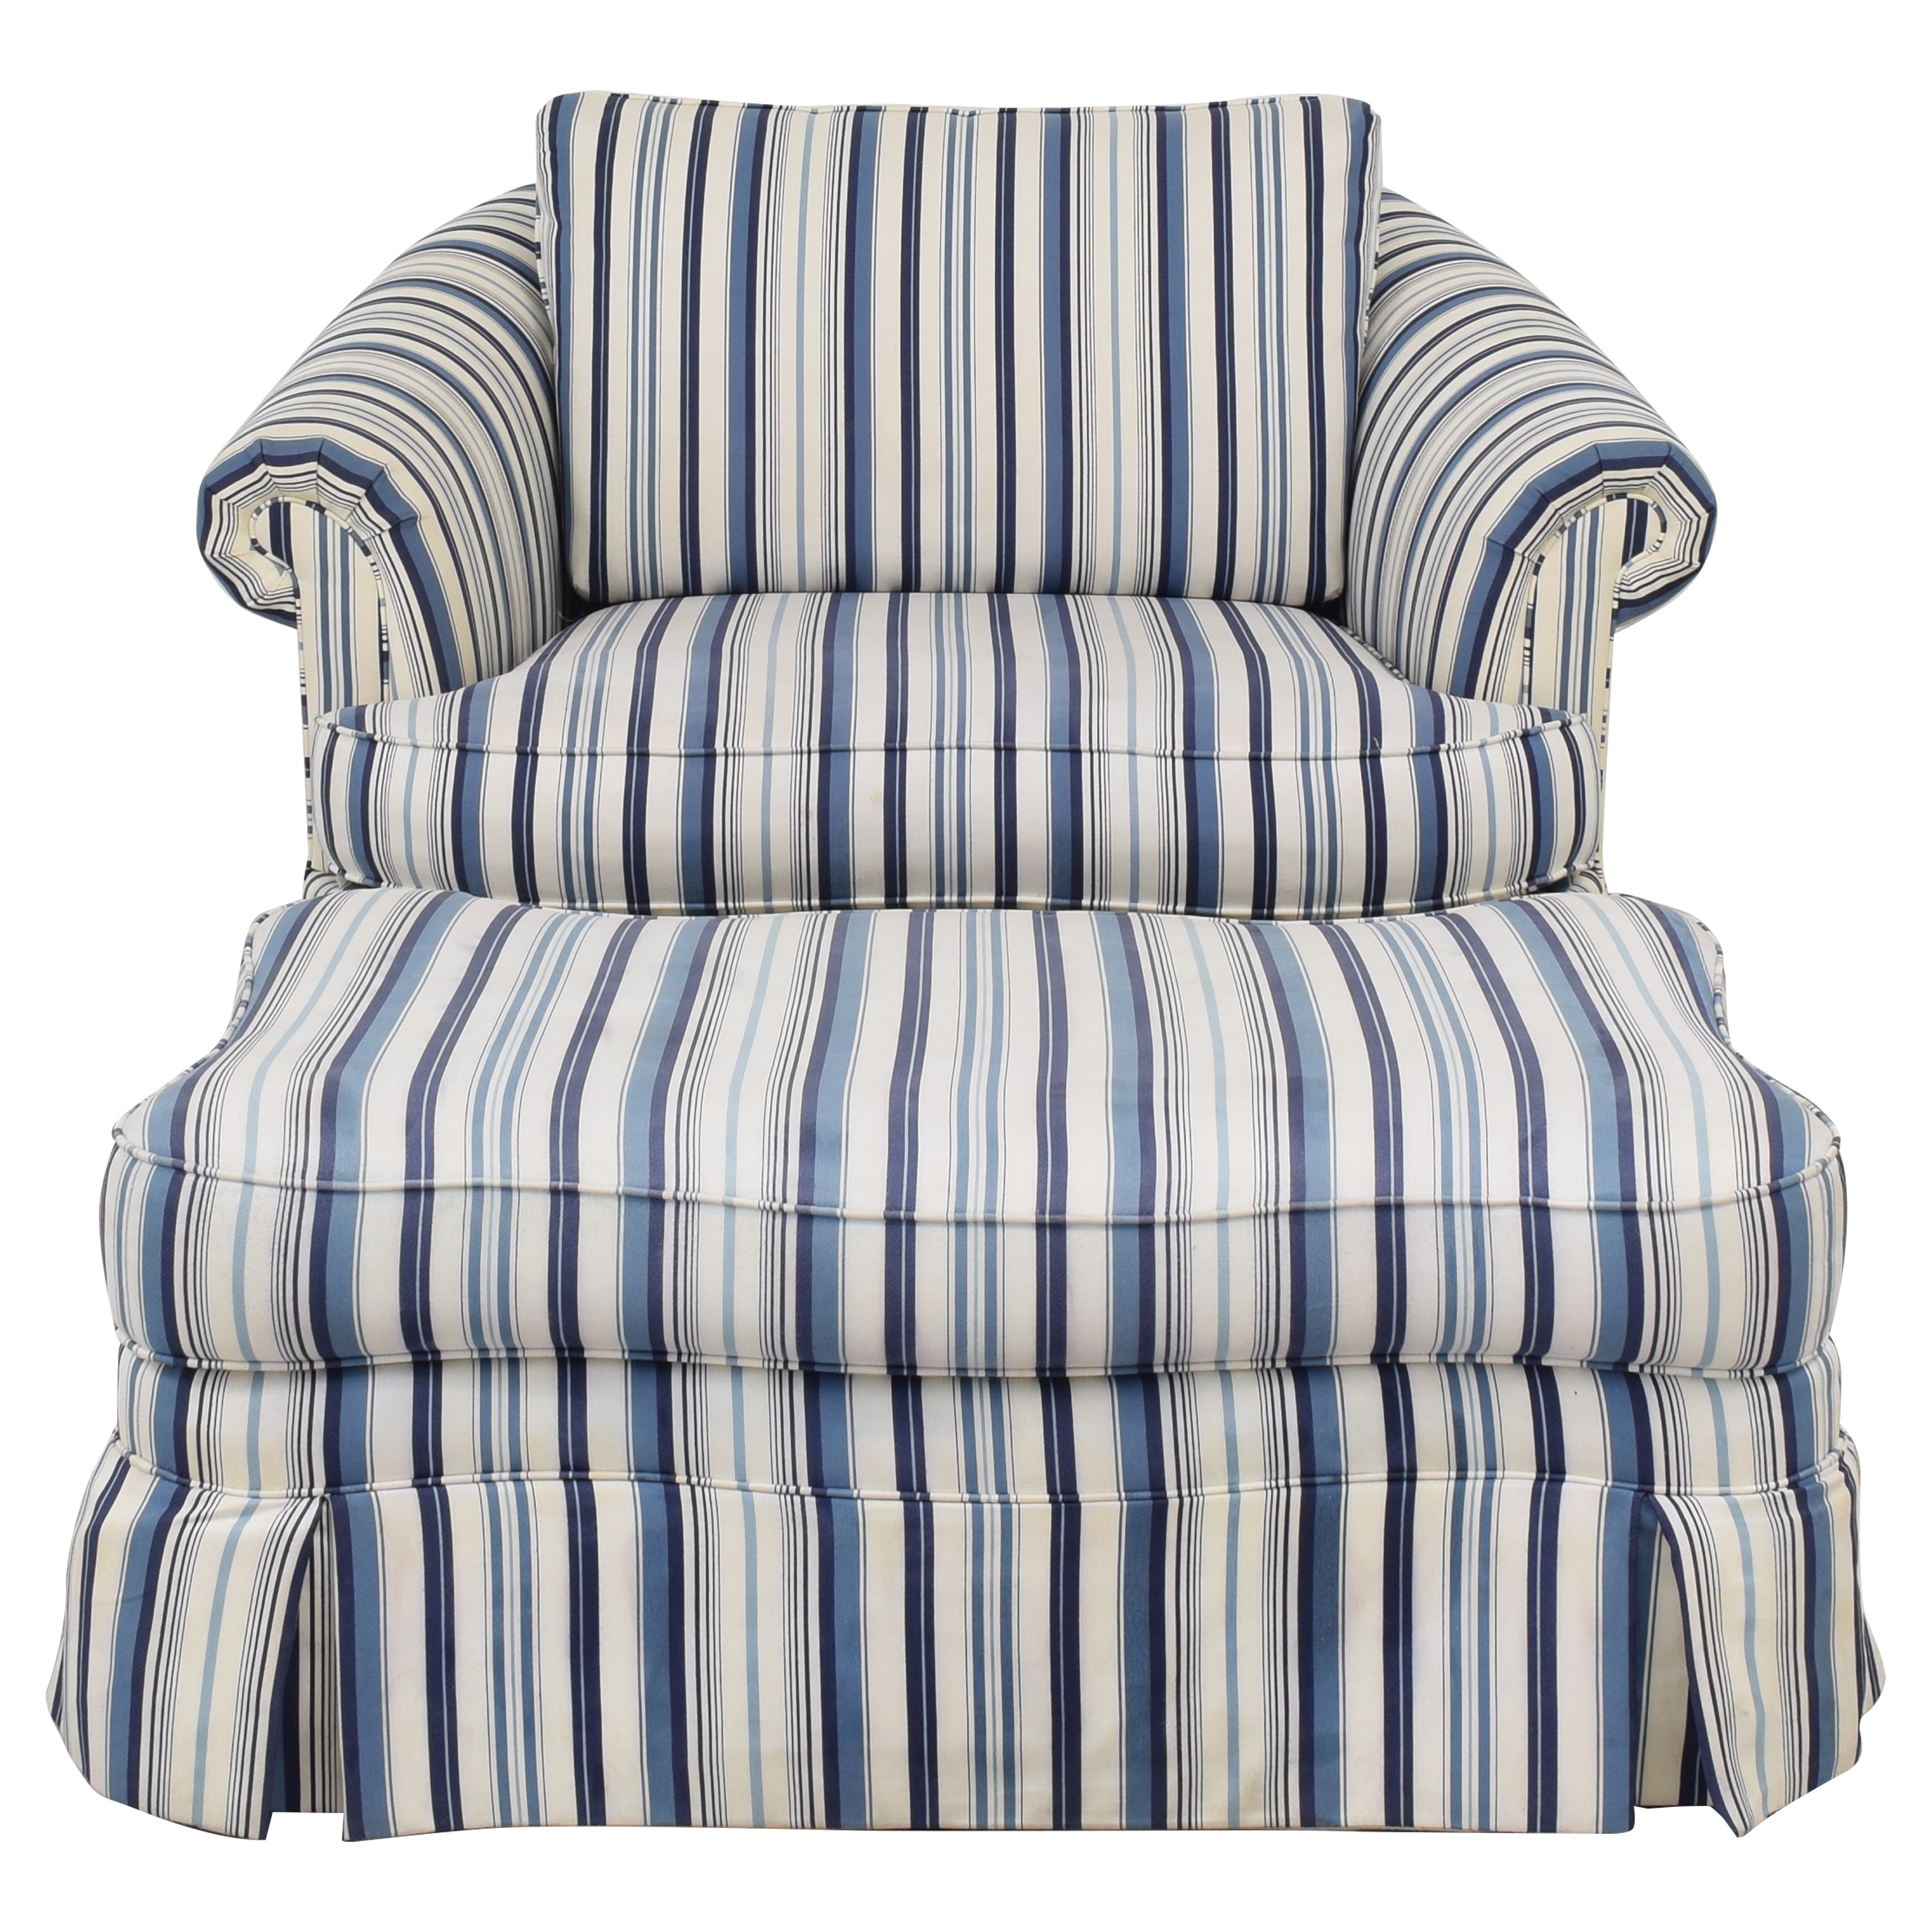 buy Ethan Allen Ethan Allen Skirted Slipcovered Armchair with Ottoman online